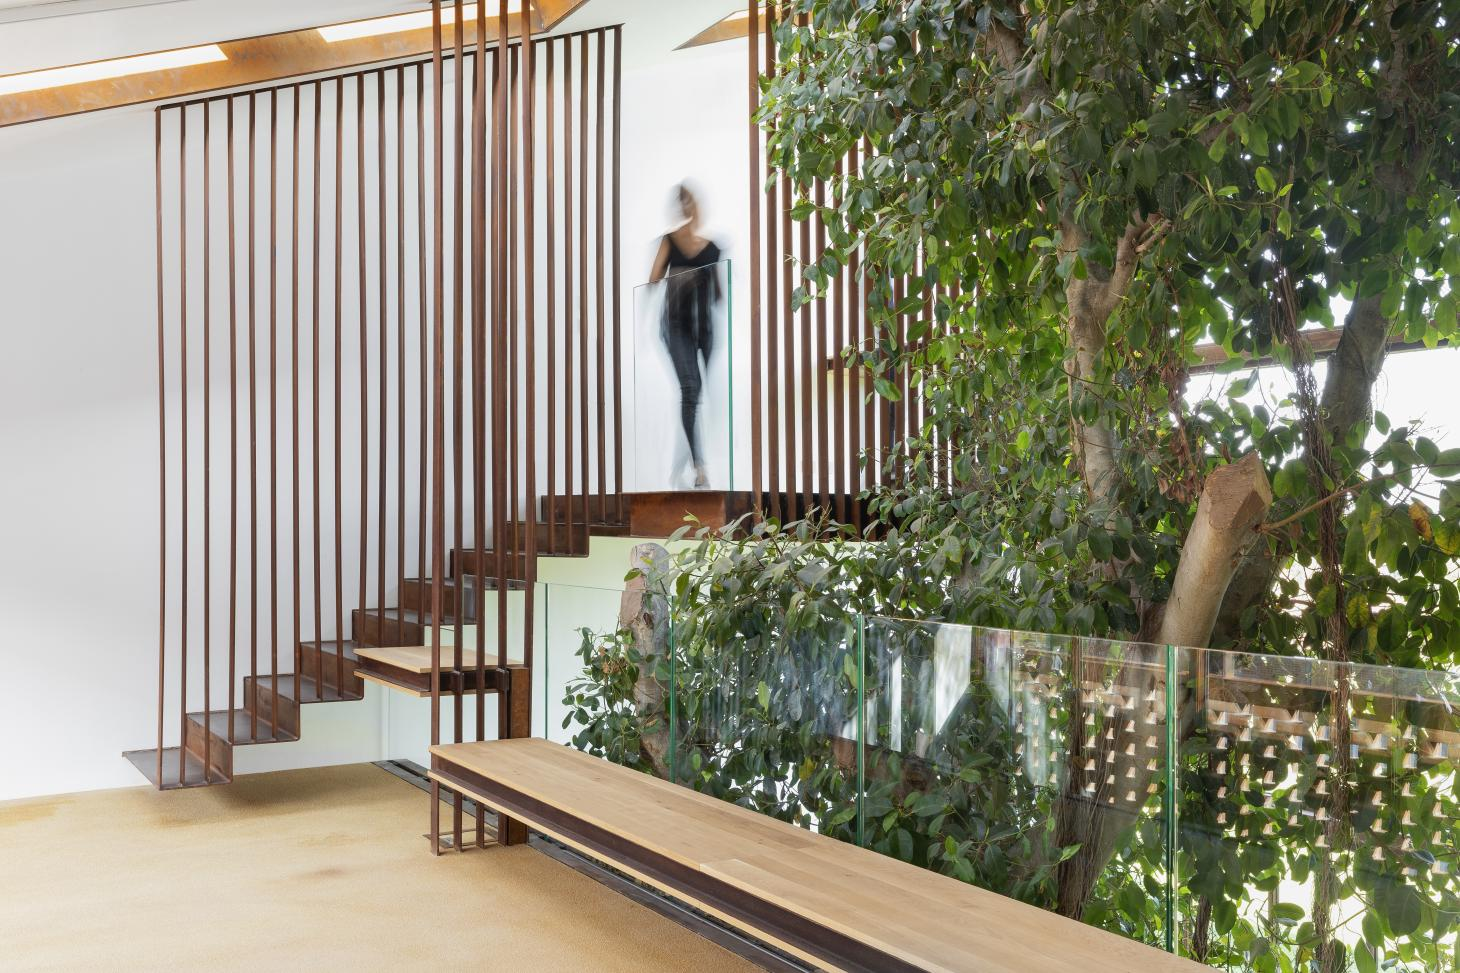 staircase and greenery at Greenary by Carlo Ratti